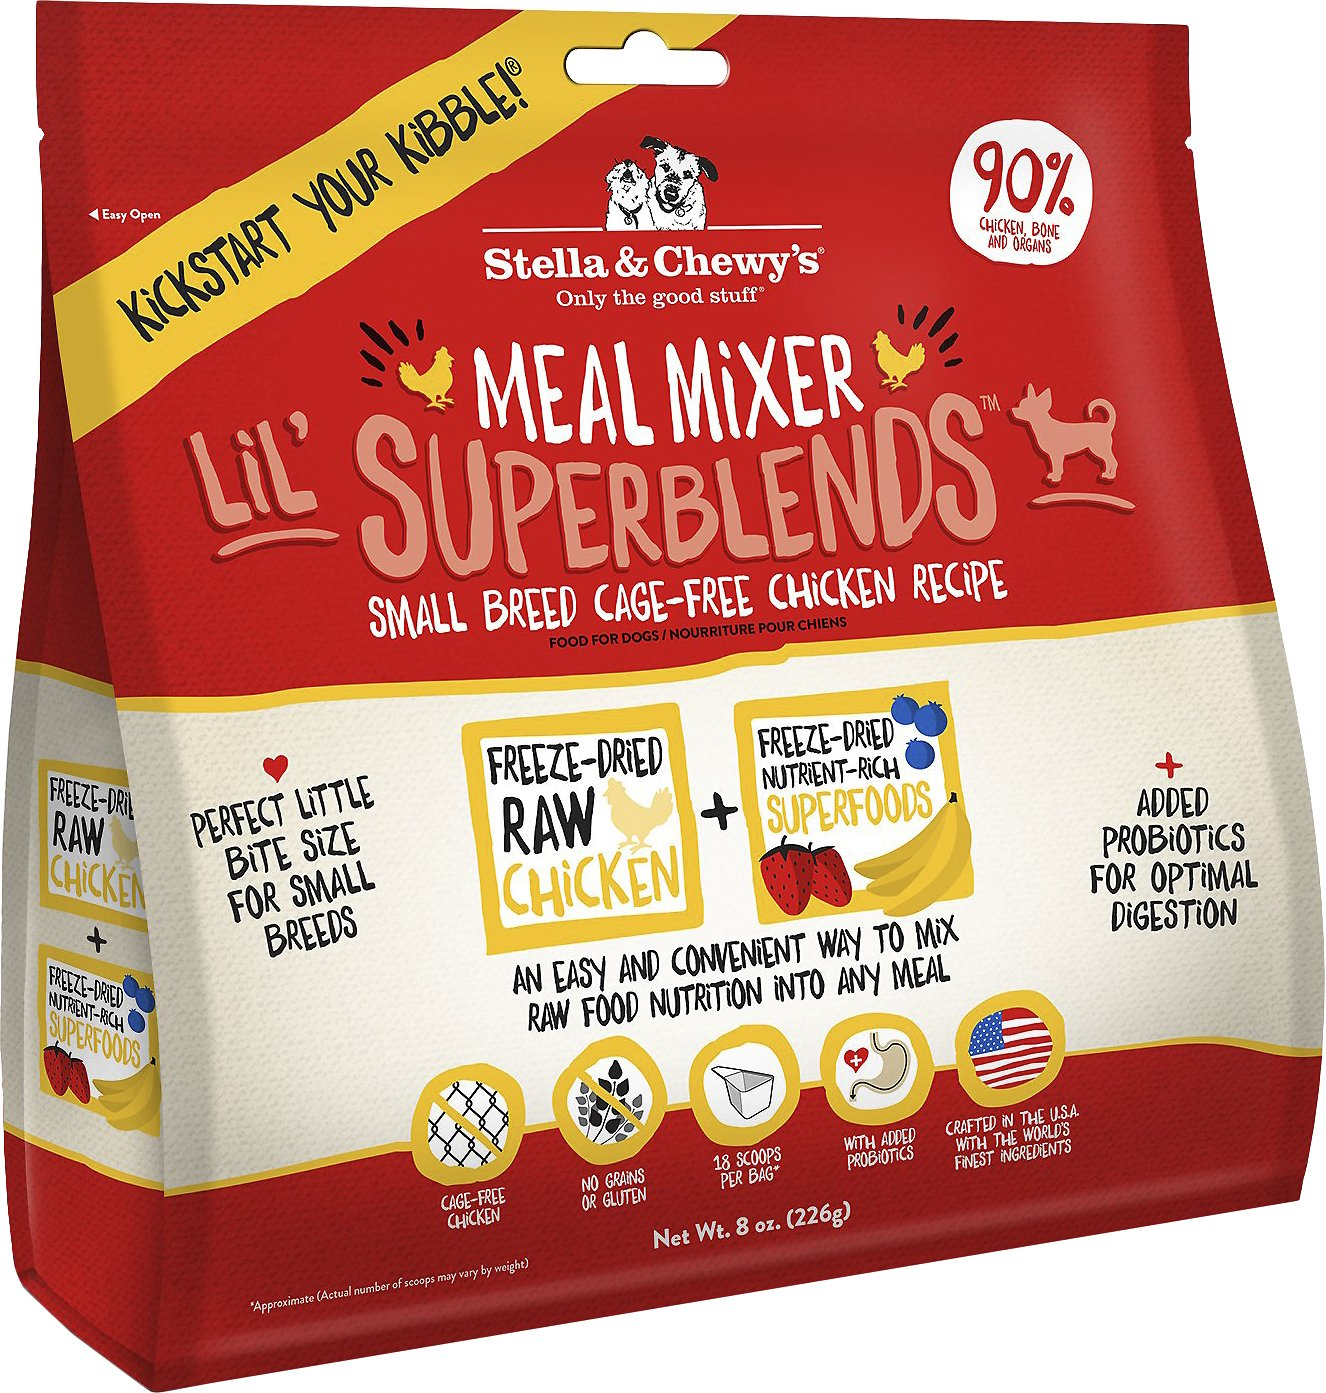 Stella & Chewy's Lil' SuperBlends Small Breed Cage-Free Chicken Recipe Meal Mixers Grain-Free Freeze-Dried Dog Food Image